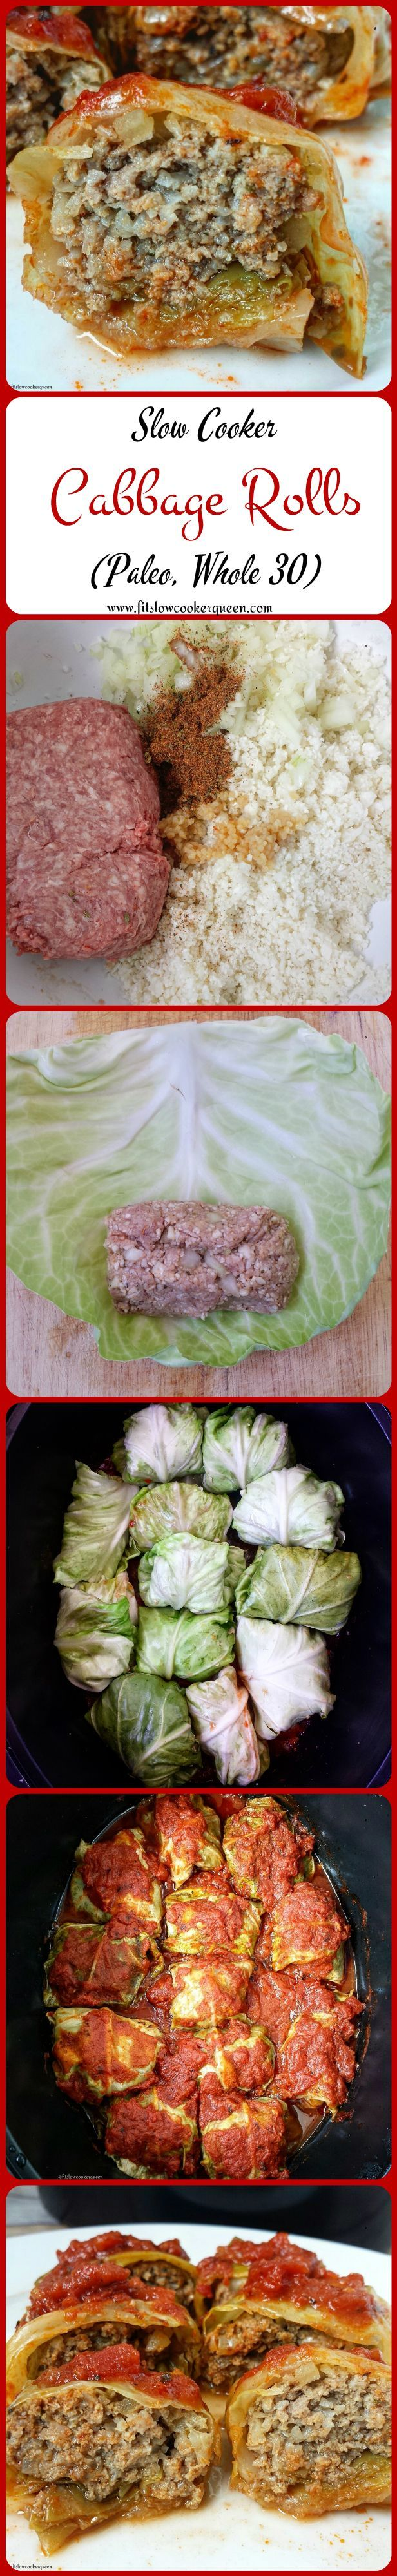 This healthy, low-carb, paleo, and whole 30 compliant slow cooker version of cabbage rolls is easy to make and perfect to serve any night of the week.